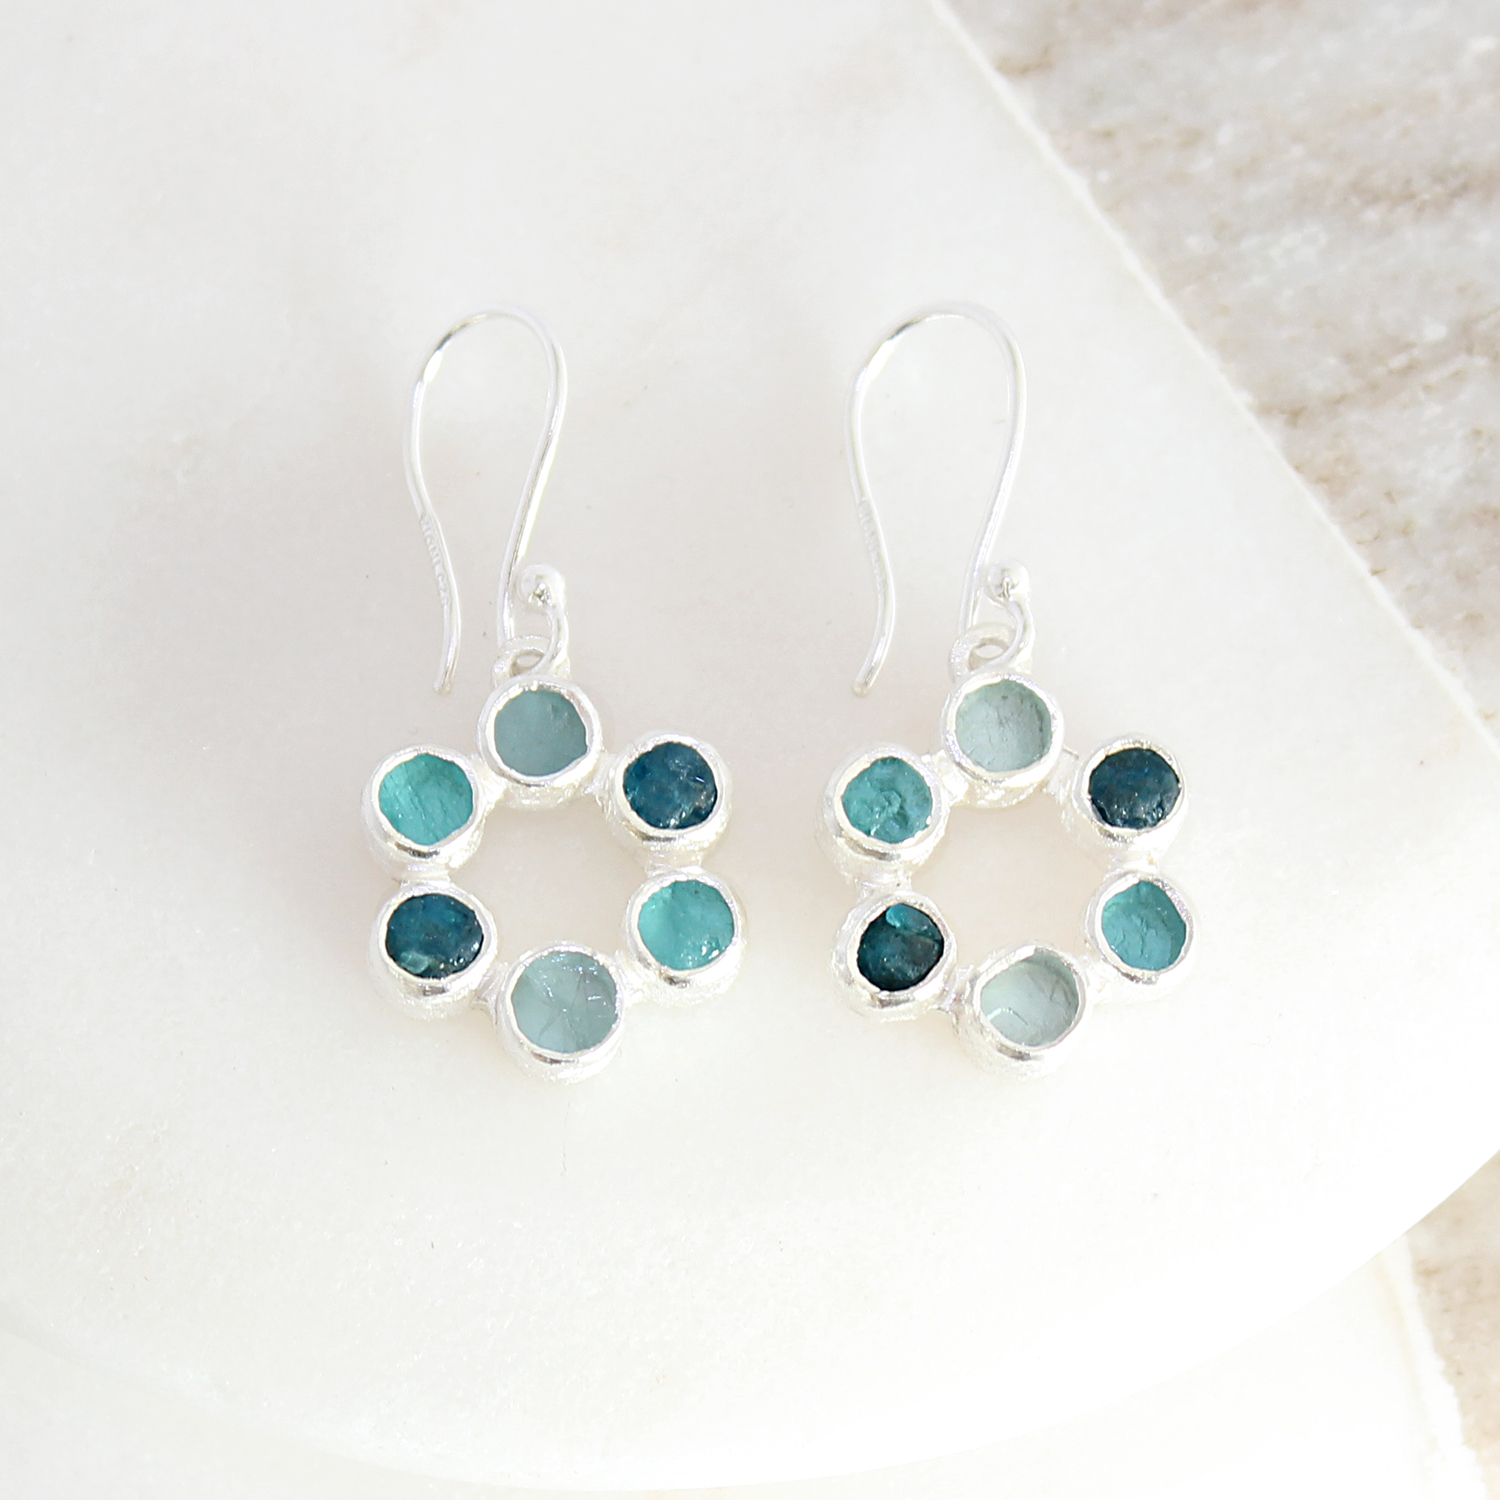 blue products jewelry neon apatite kvk earrings design bluestoneps